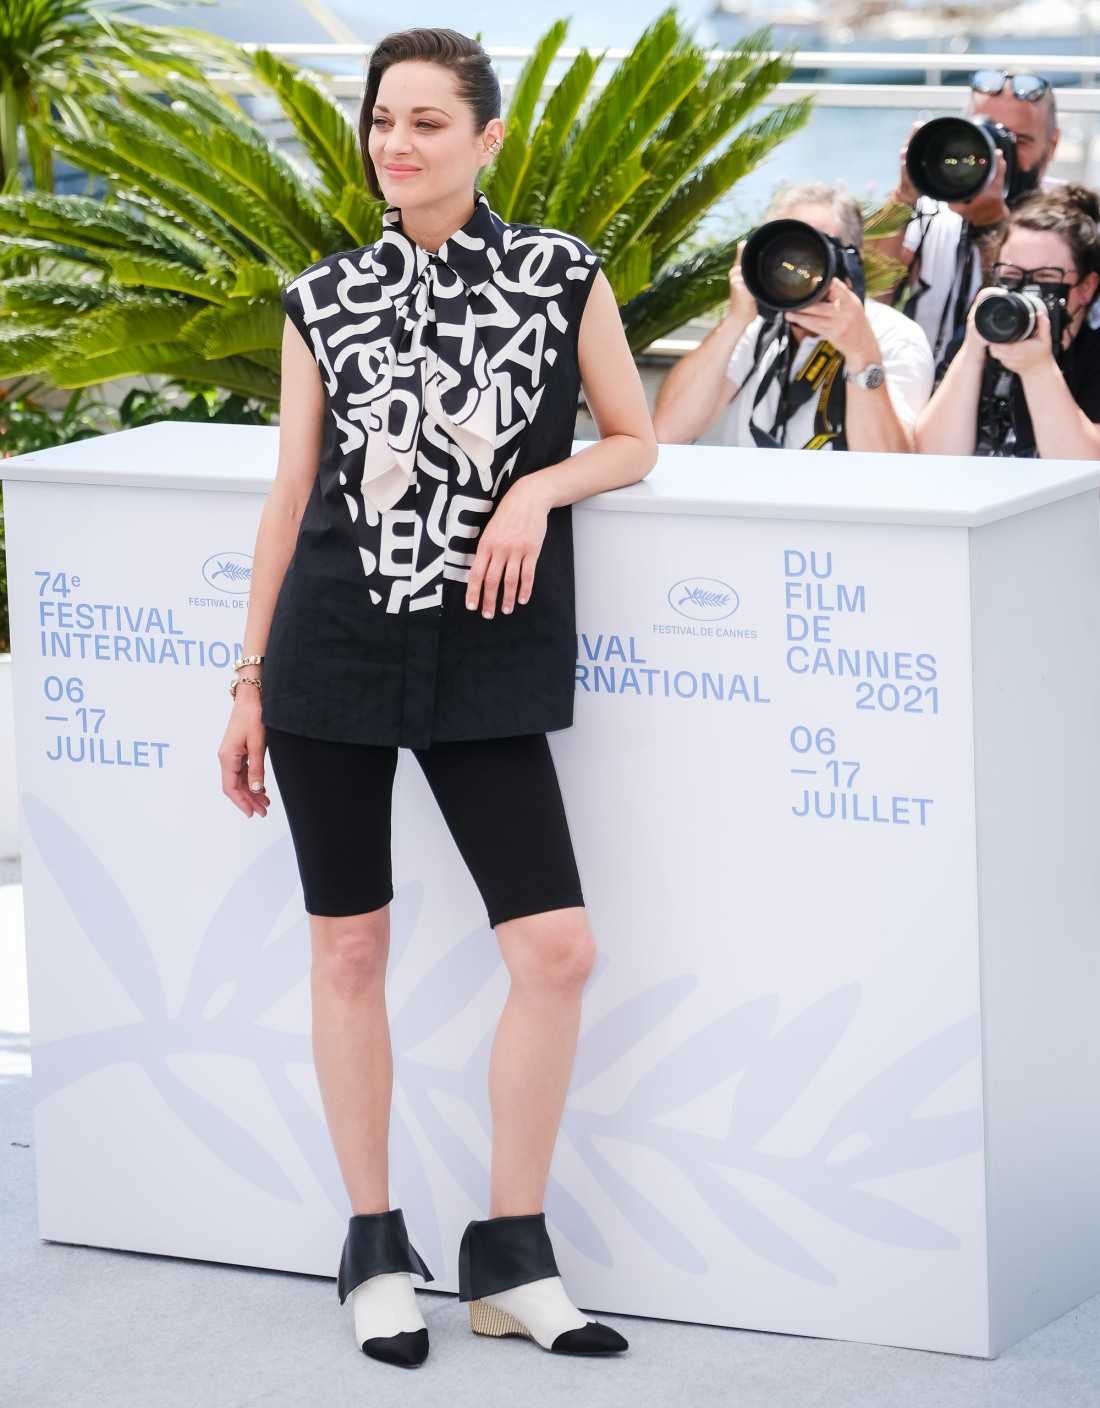 Marion Cotillard poses at the Photocall for Annettee during the 74th Cannes International Film Festival on Tuesday 6 July 2021